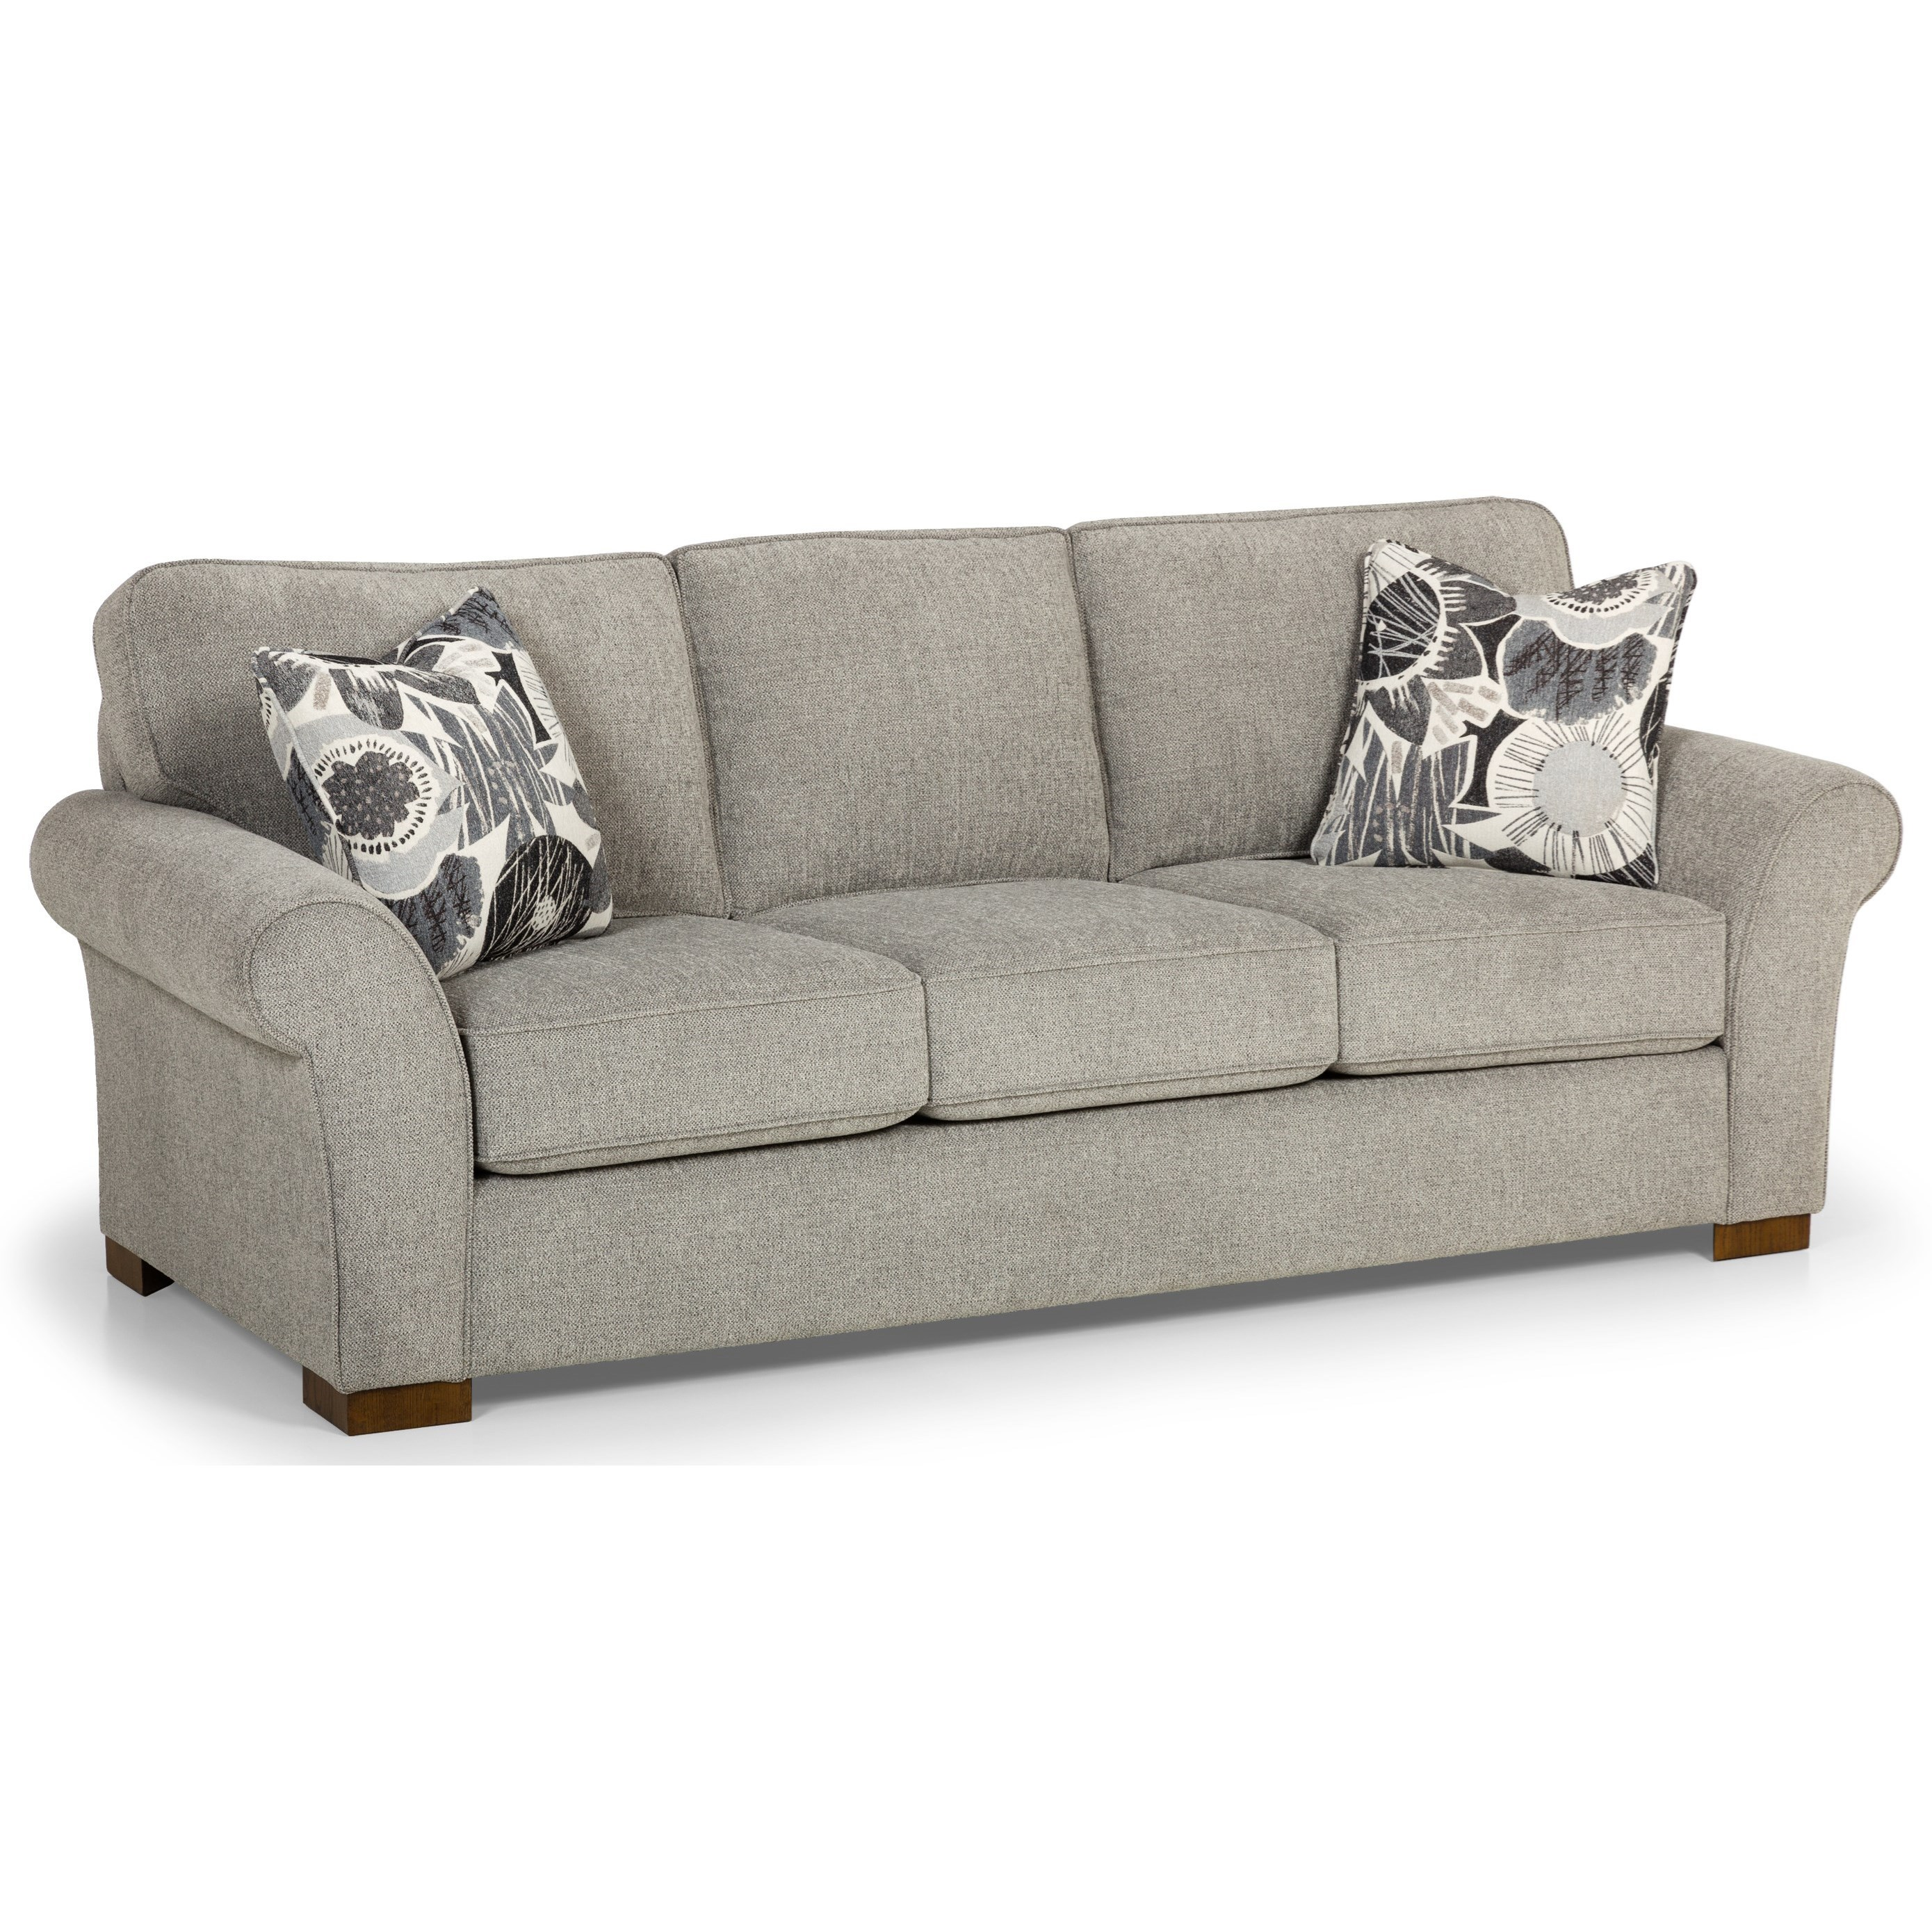 551 Sofa by Stanton at Rife's Home Furniture